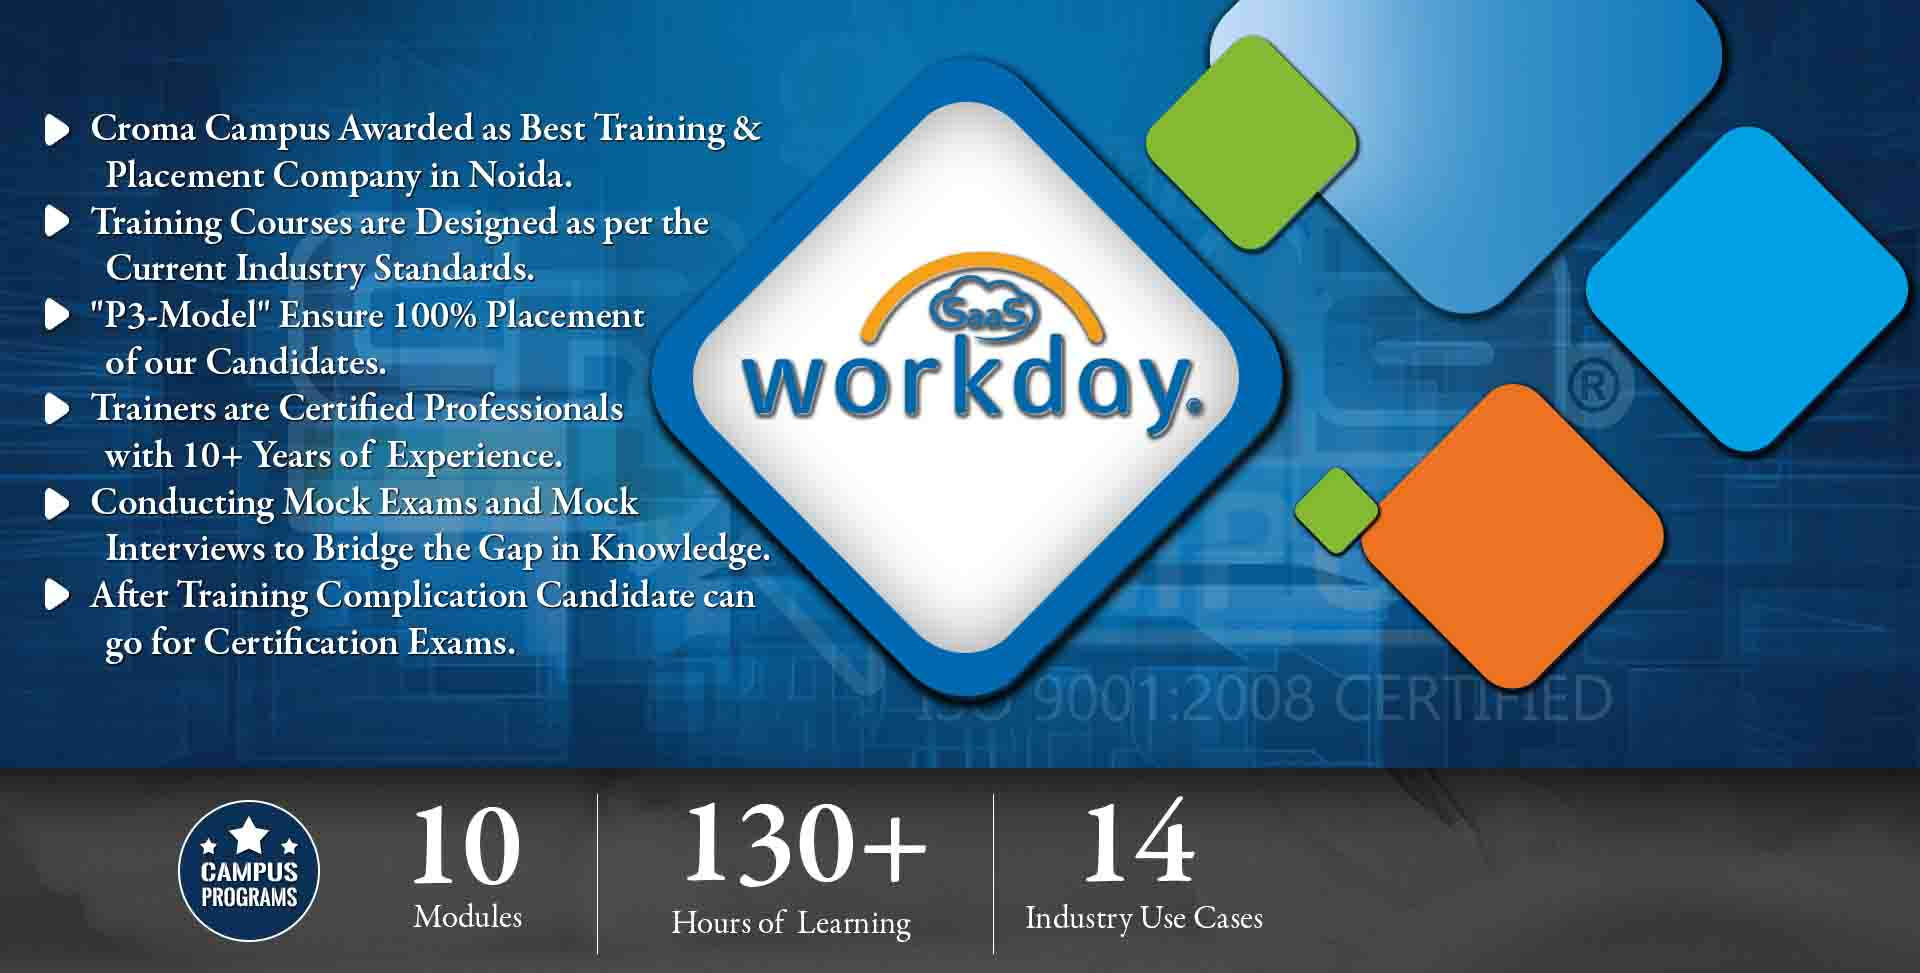 Workday SaaS Training in Delhi NCR- Croma Campus